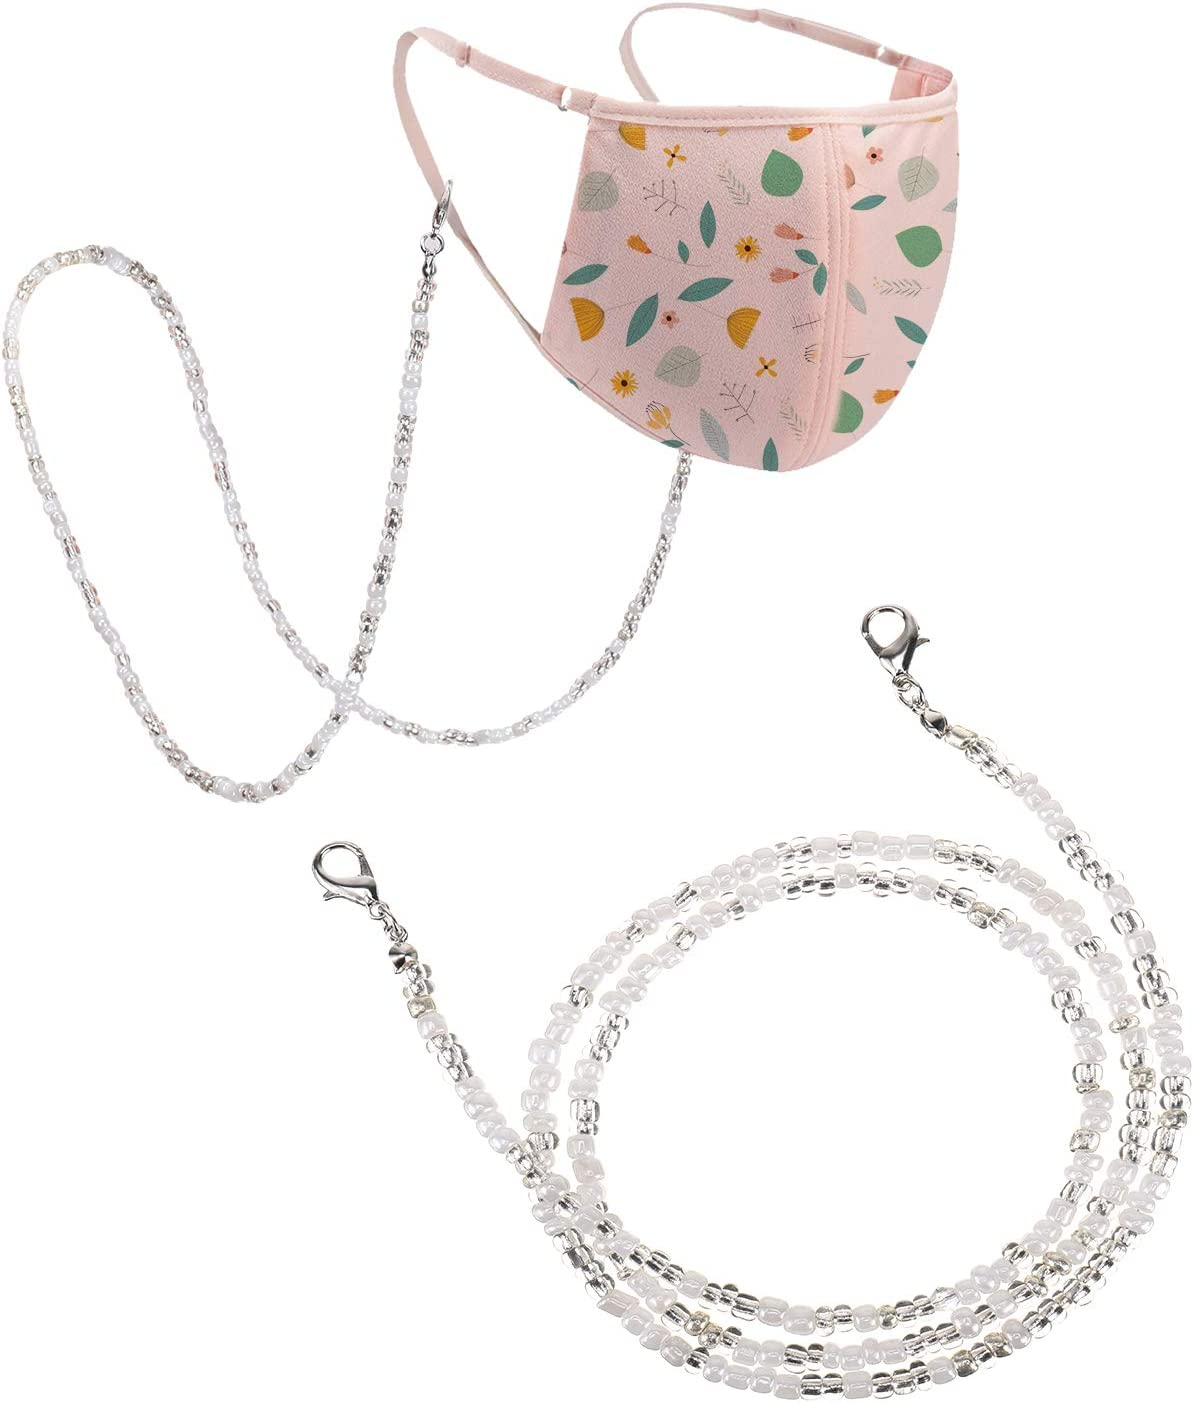 Mask Chains and Cords Max 66% OFF for INN LACE All items in the store Bead Chain Women